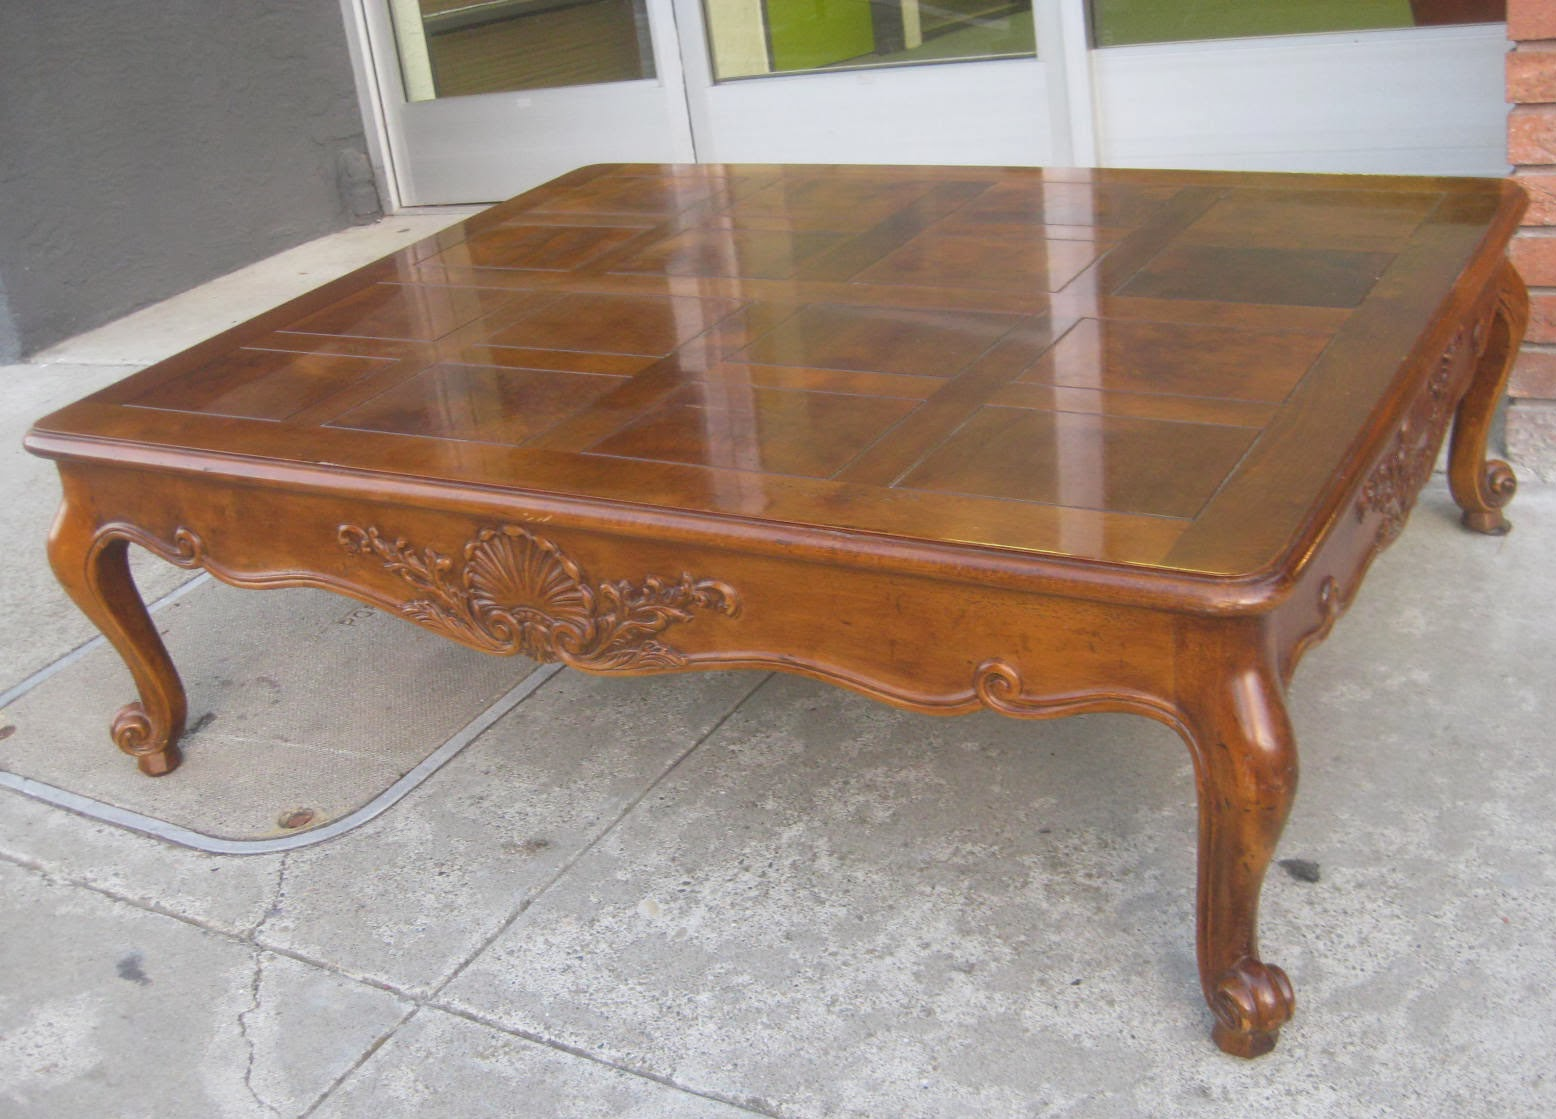 50 Square Coffee Table Uhuru Furniture And Collectibles Sold Large Coffee Table